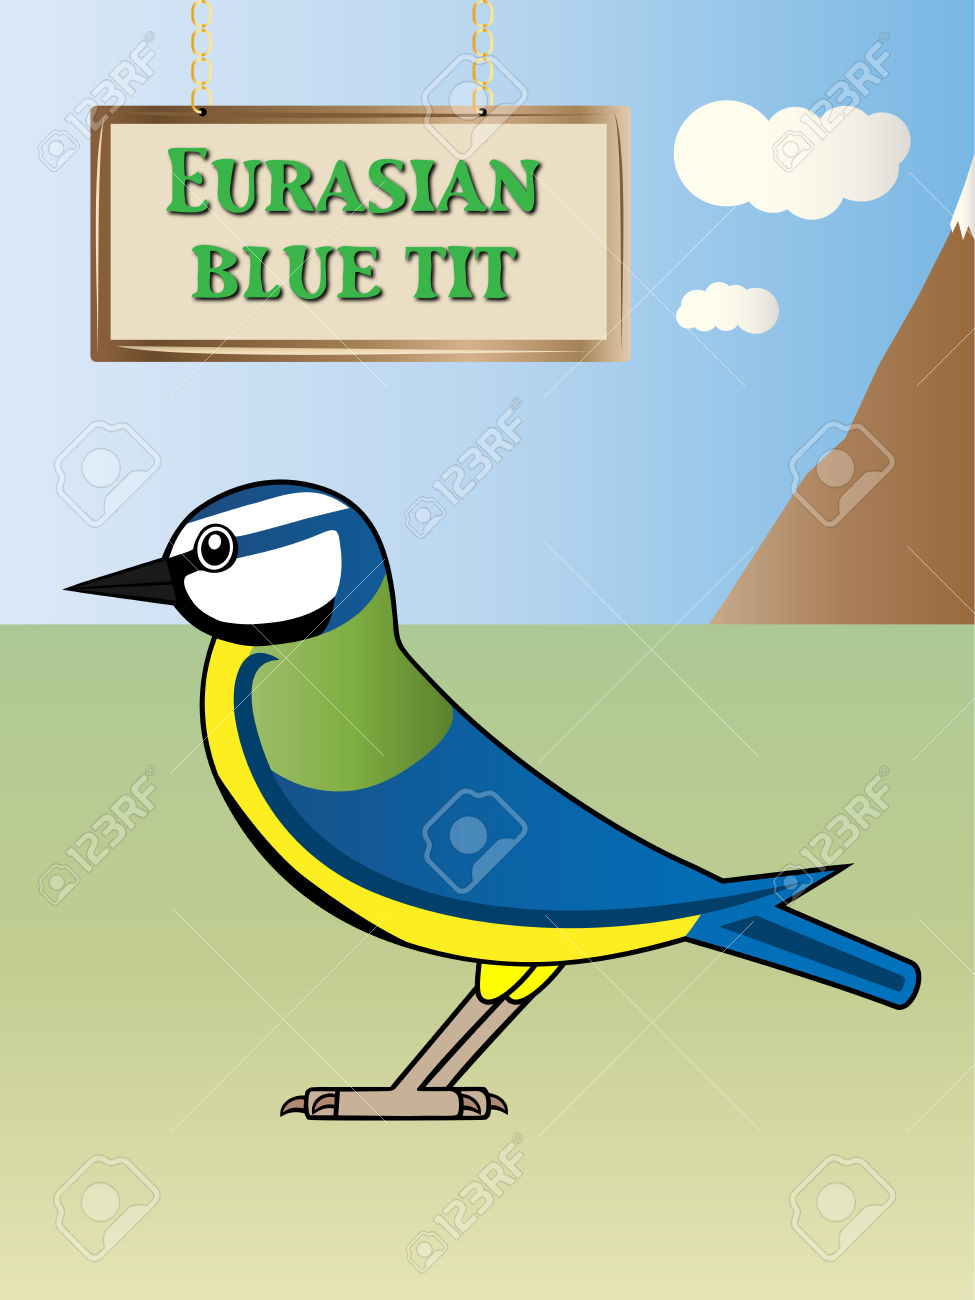 Eurasian Blue Tit clipart #17, Download drawings